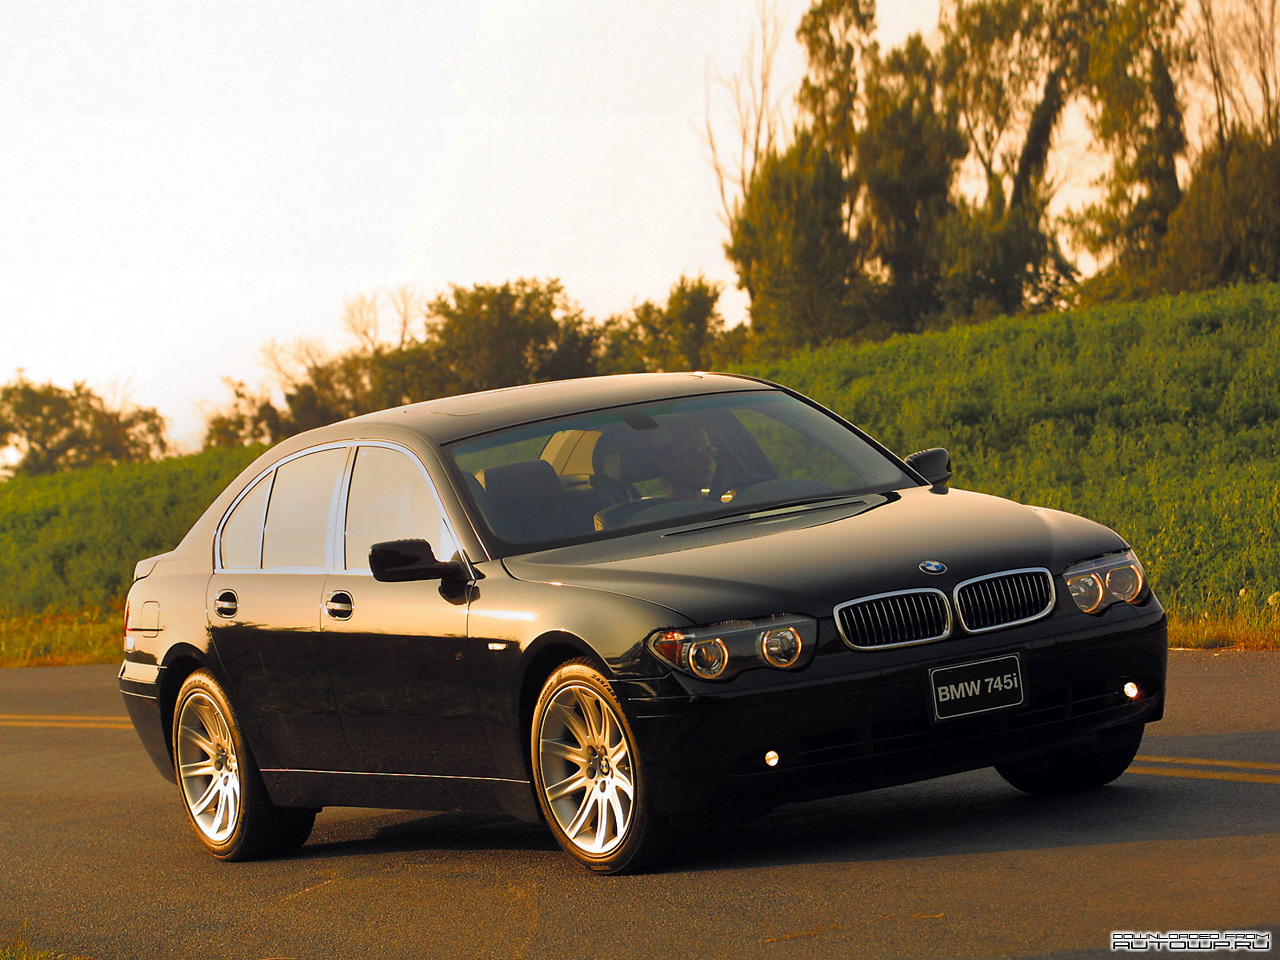 BMW 7-series E65 E66 photo 62577